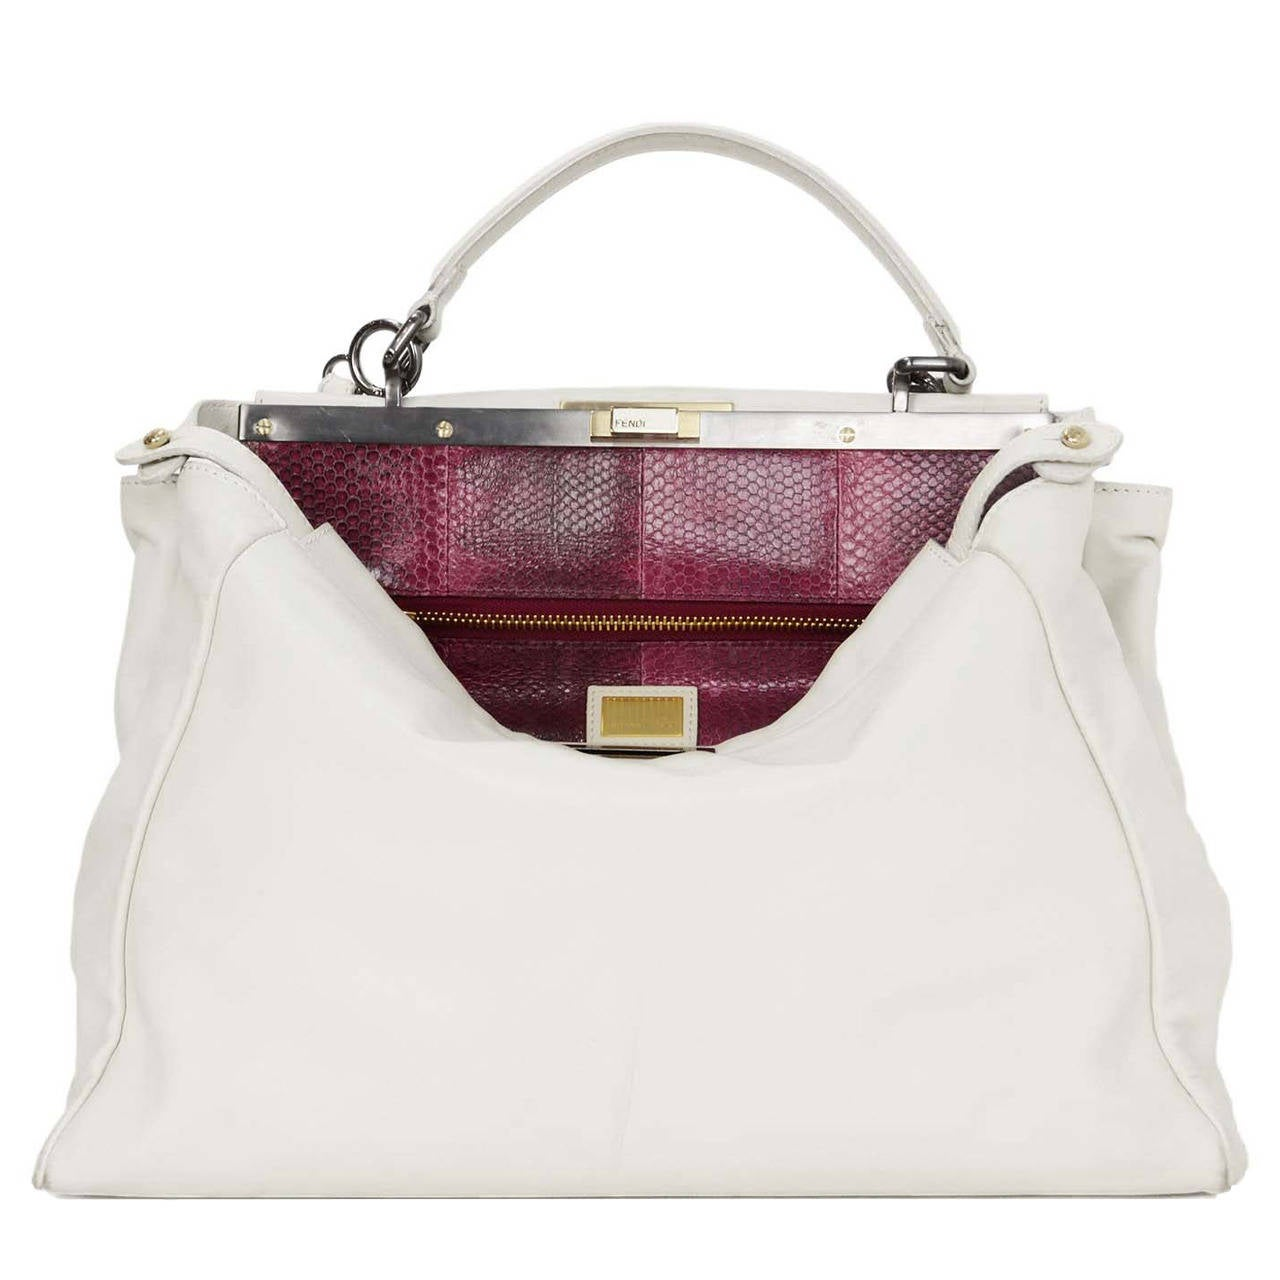 e3db11e48ea2 Fendi White Leather Large Peekaboo Bag w Pink Python Lining rt ...